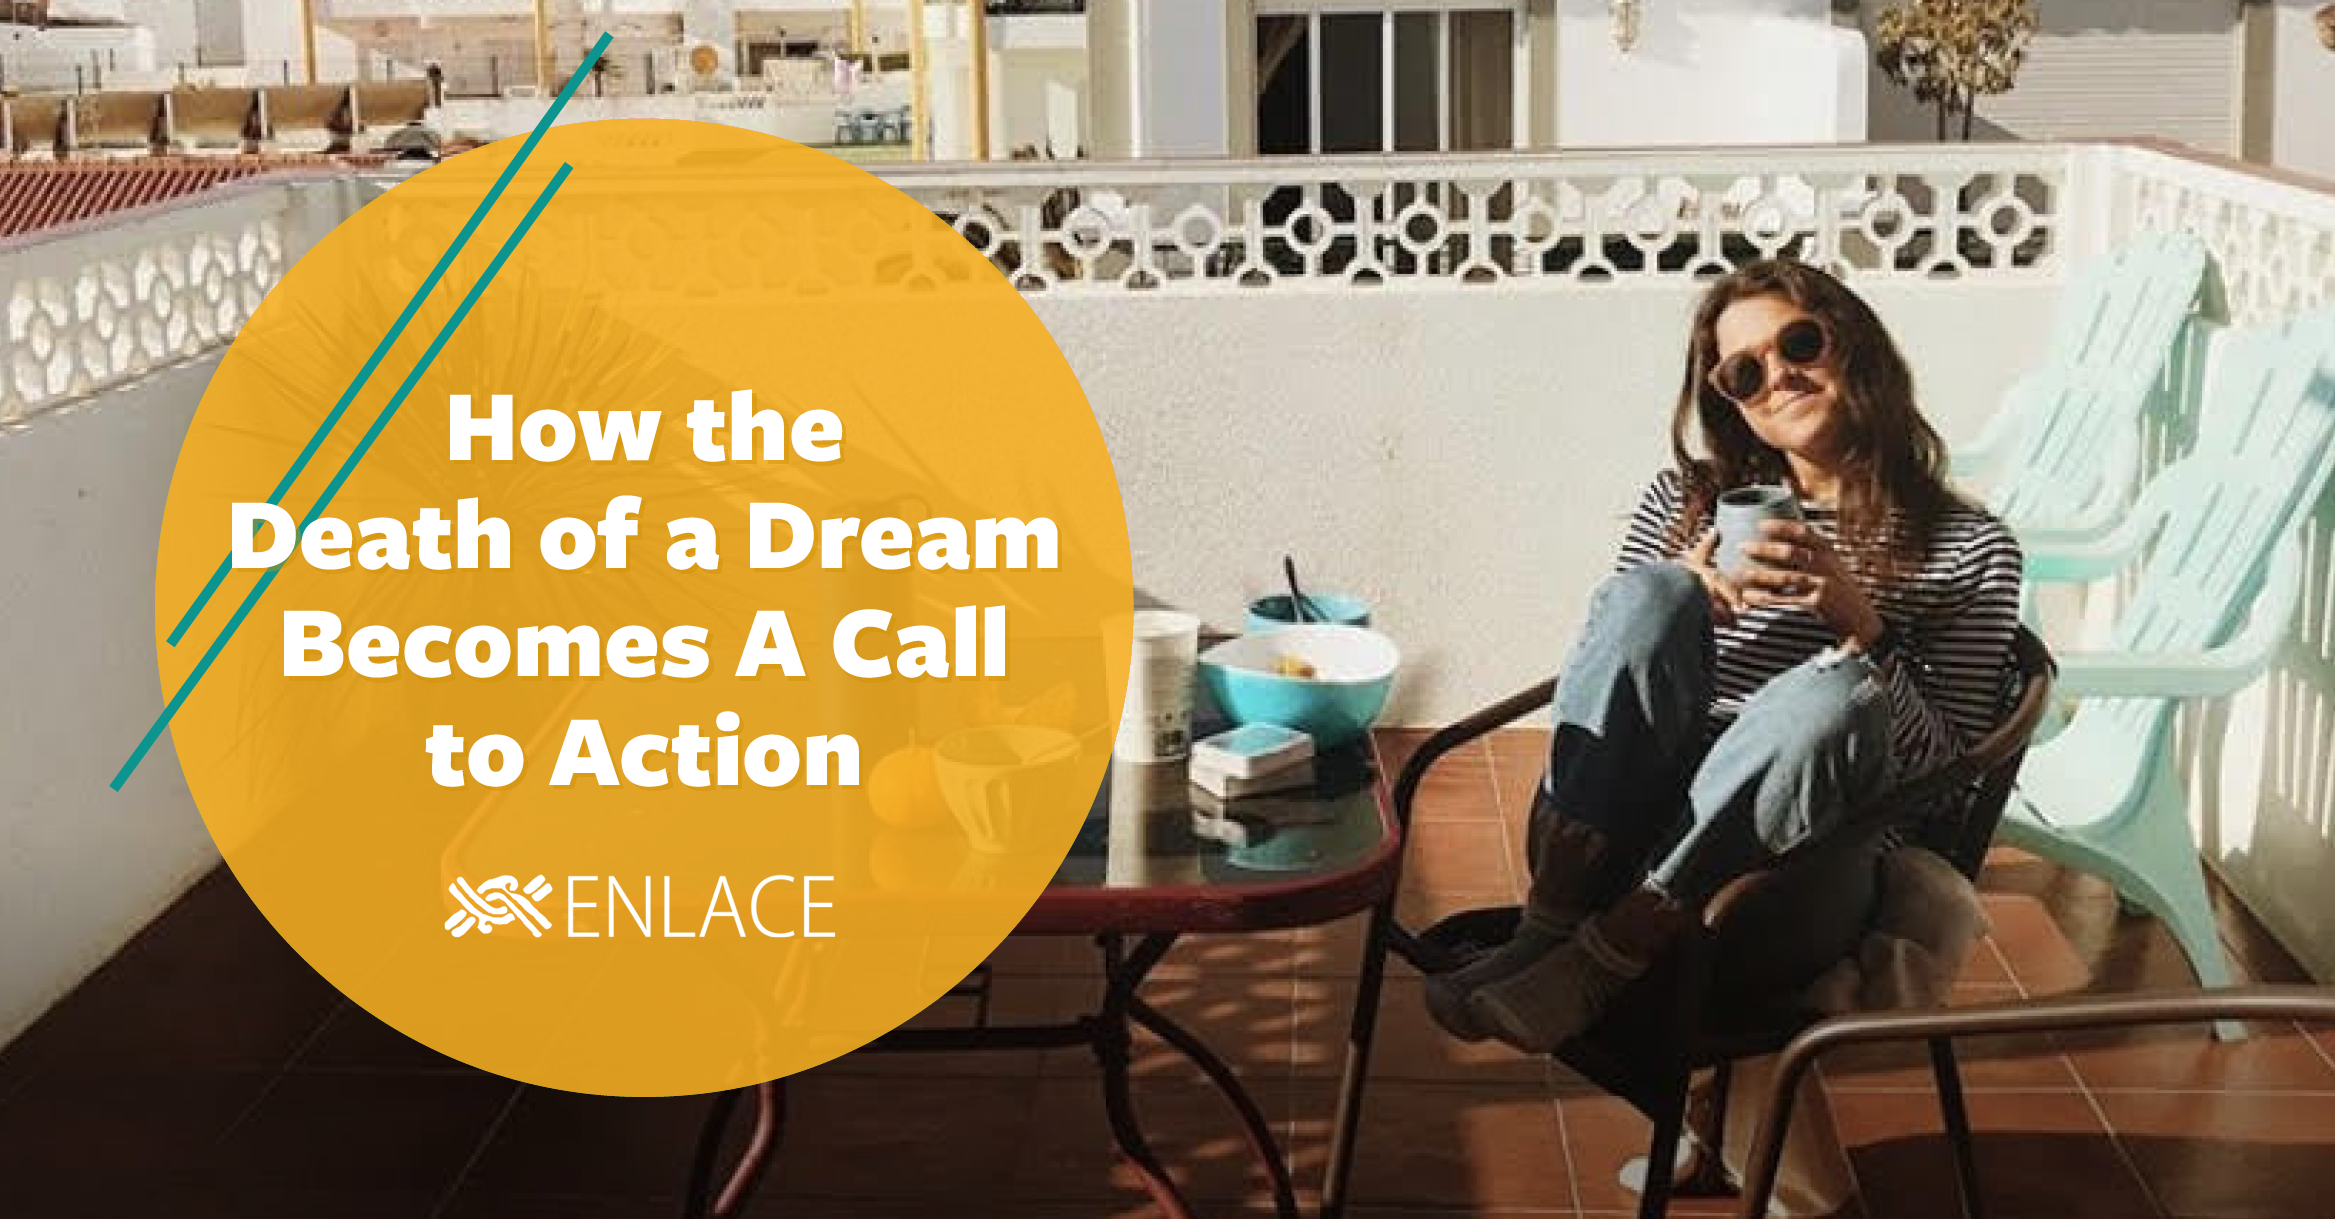 How the Death of a Dream Becomes a Call to Action